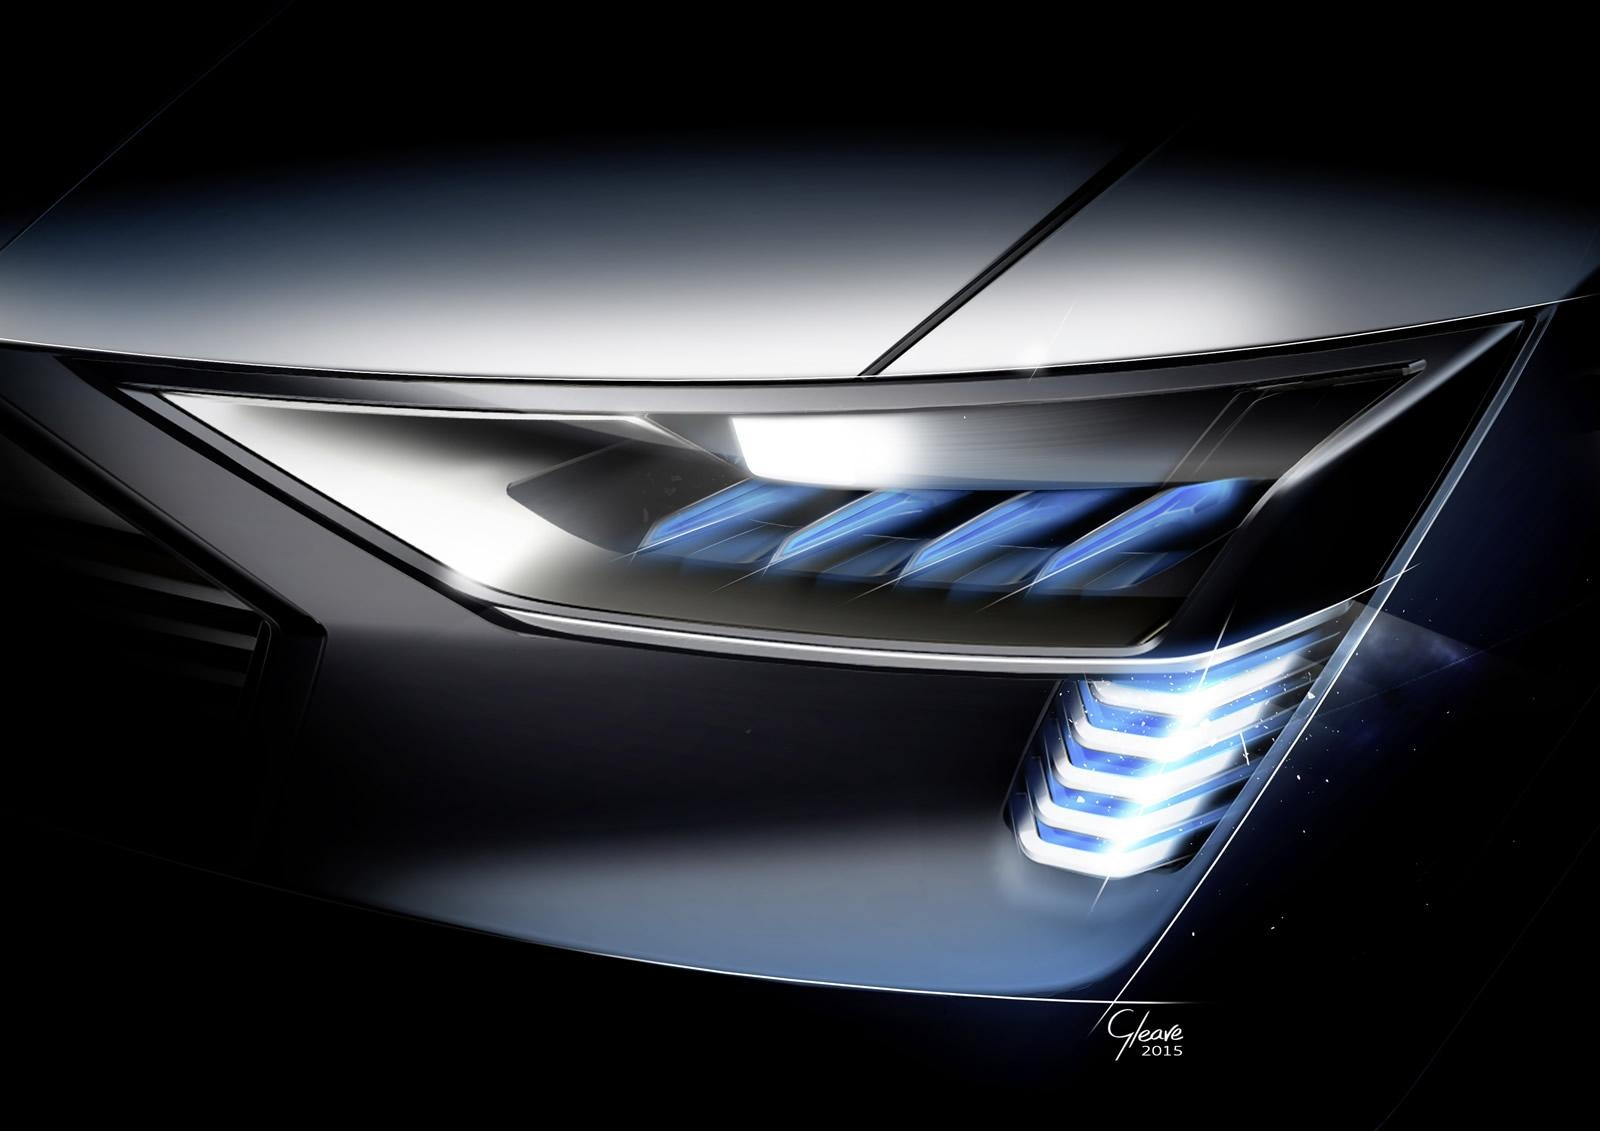 audi-e-tron-quattro-concept-teaser-shows-future-q6-electric-suv-for-the-first-time_4